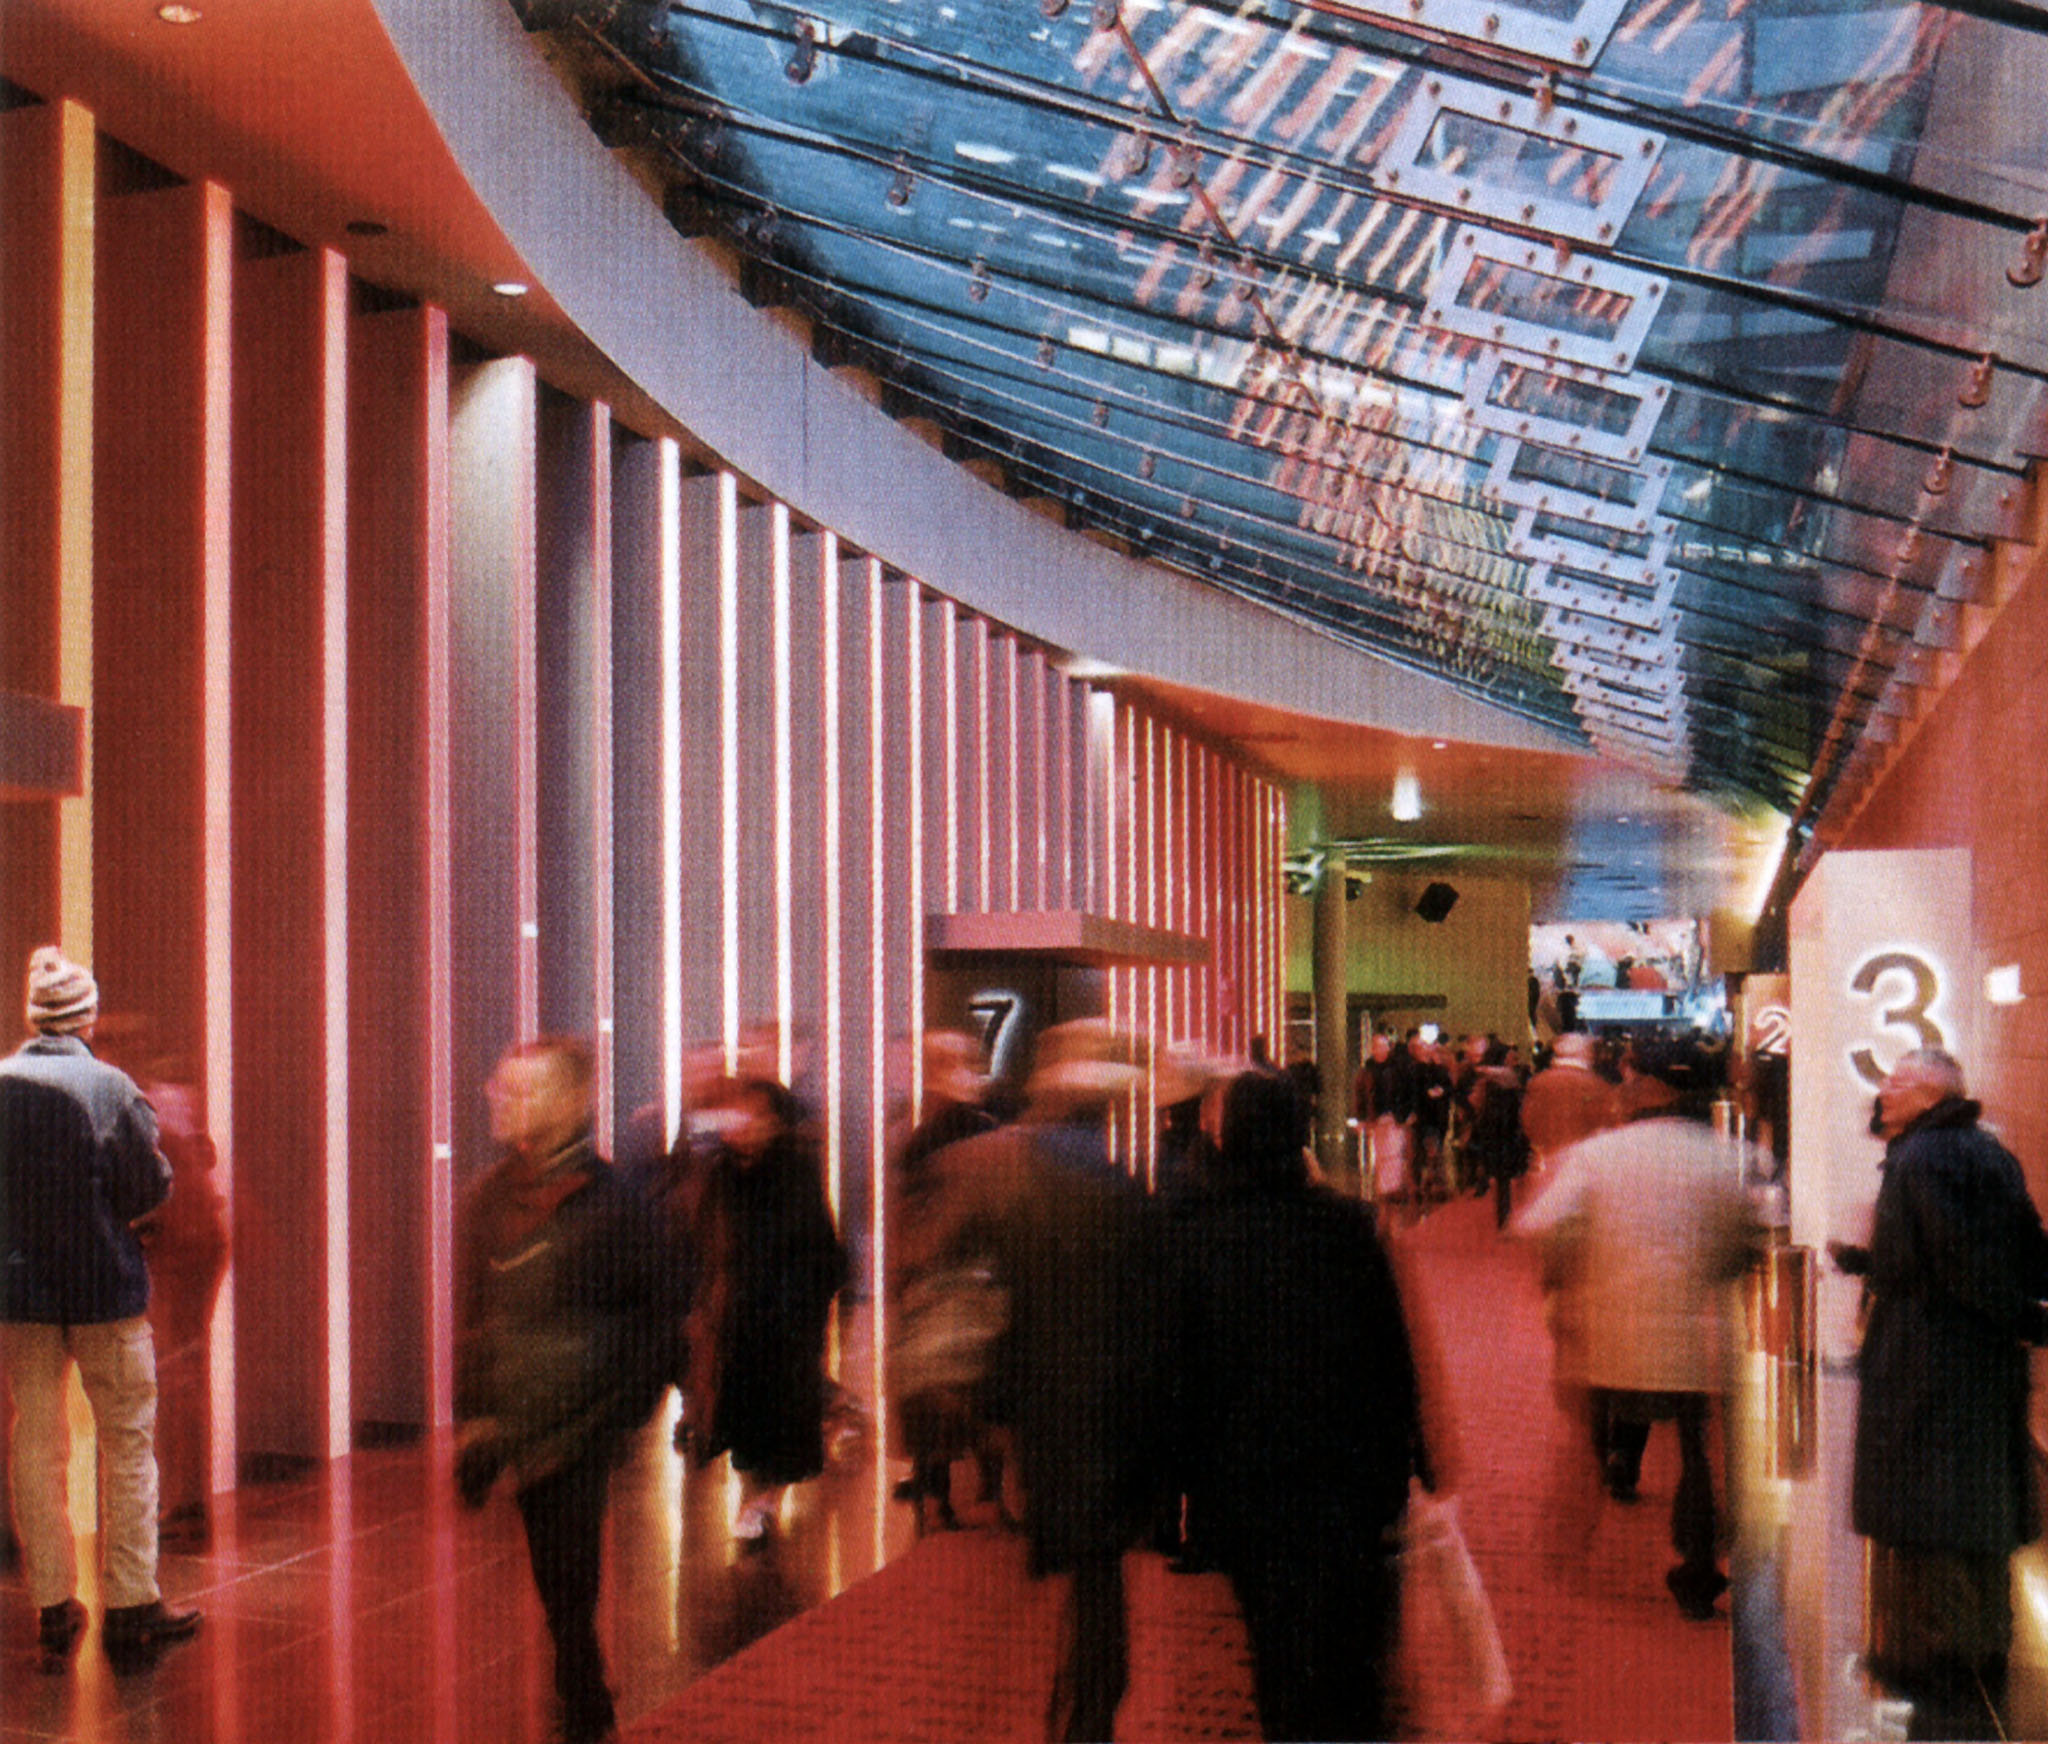 Sony-Center Kino, Potsdamer Platz 2